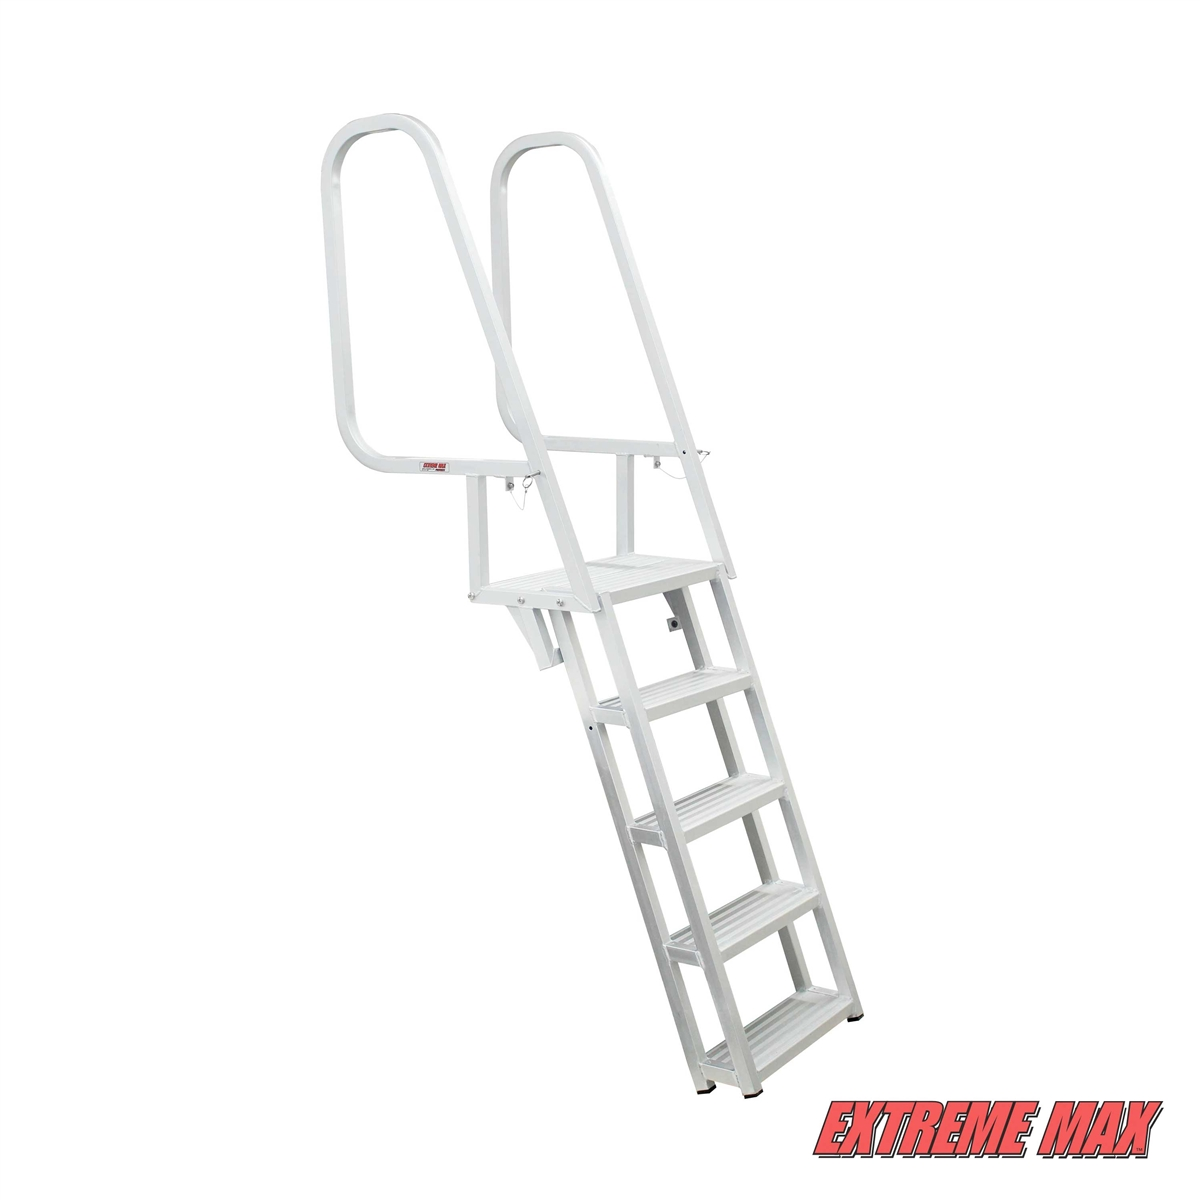 Extreme Max Deluxe Flip Up Dock Ladder With